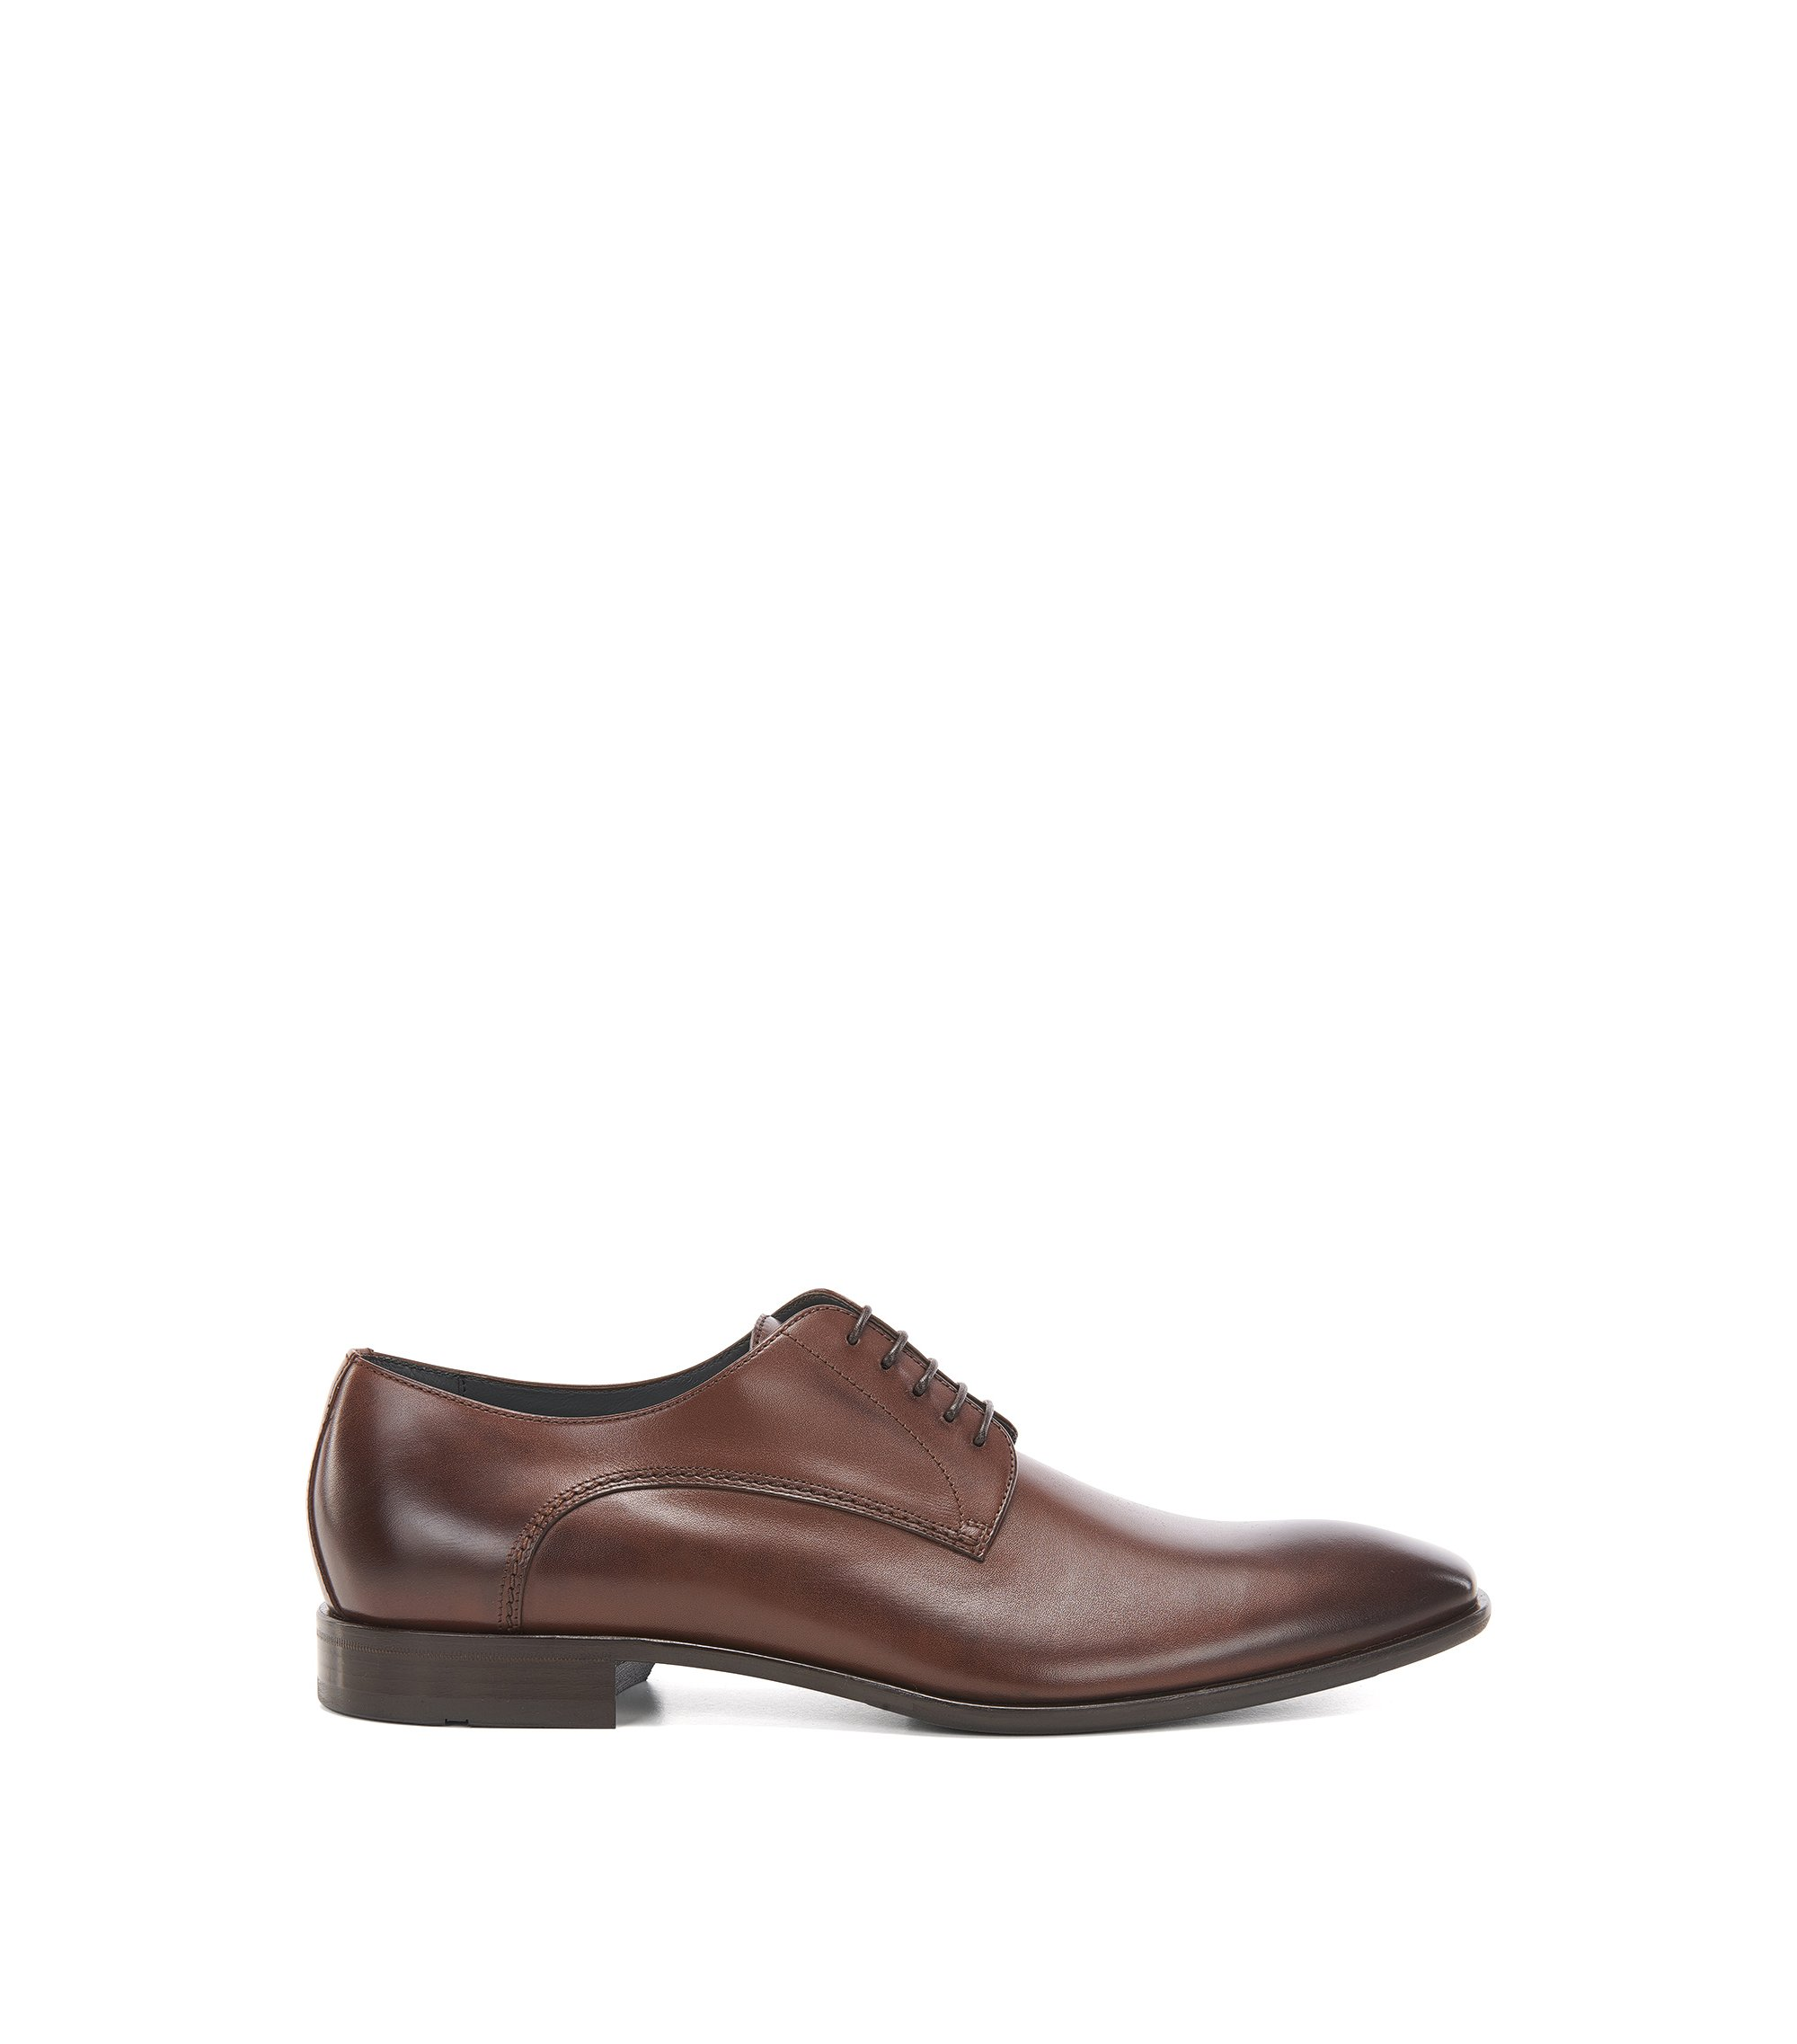 Leather Oxford shoes with antique finish, Brown